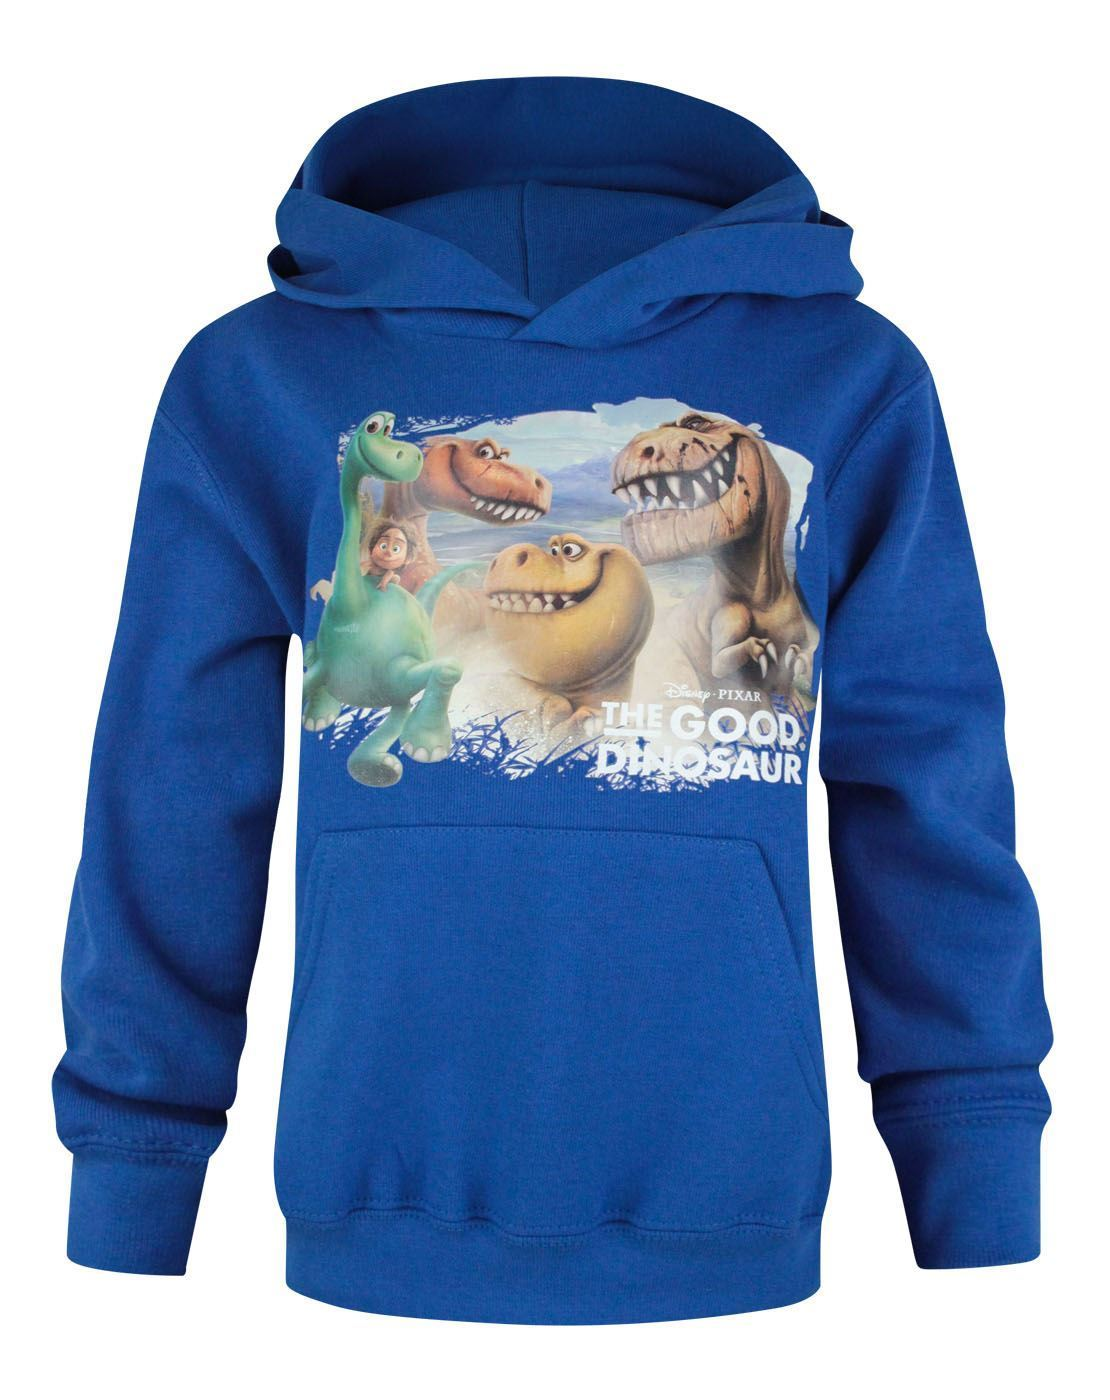 The Good Dinosaur Boy's Hoodie